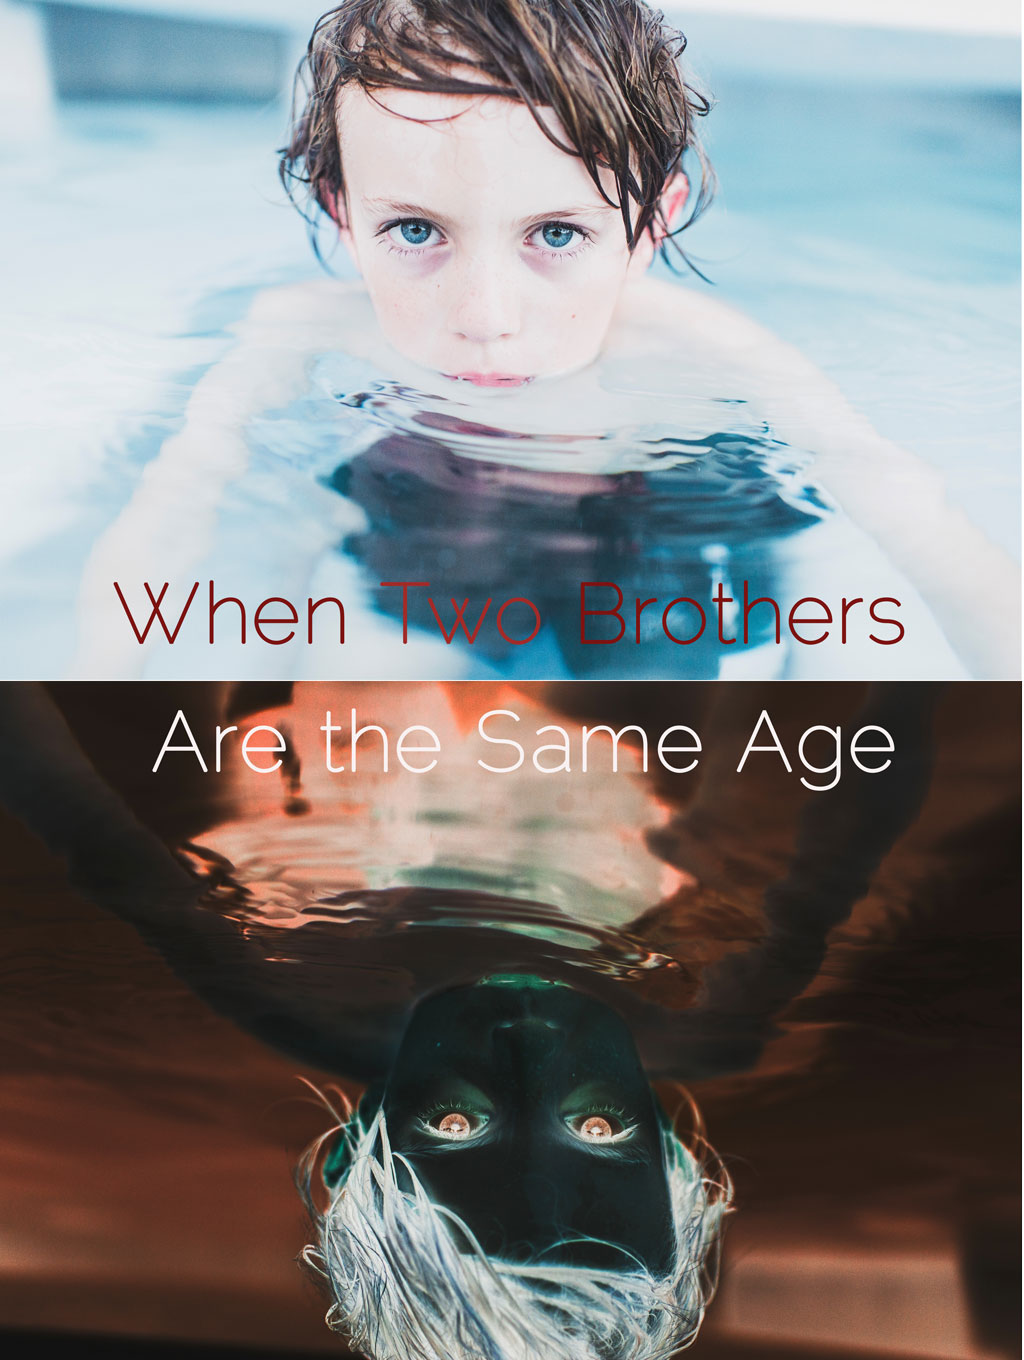 Boy swimming in pool, with his blue eyes and wet hair just above the water line. A negative double of the image is beneath it, with the title of the piece in the center.